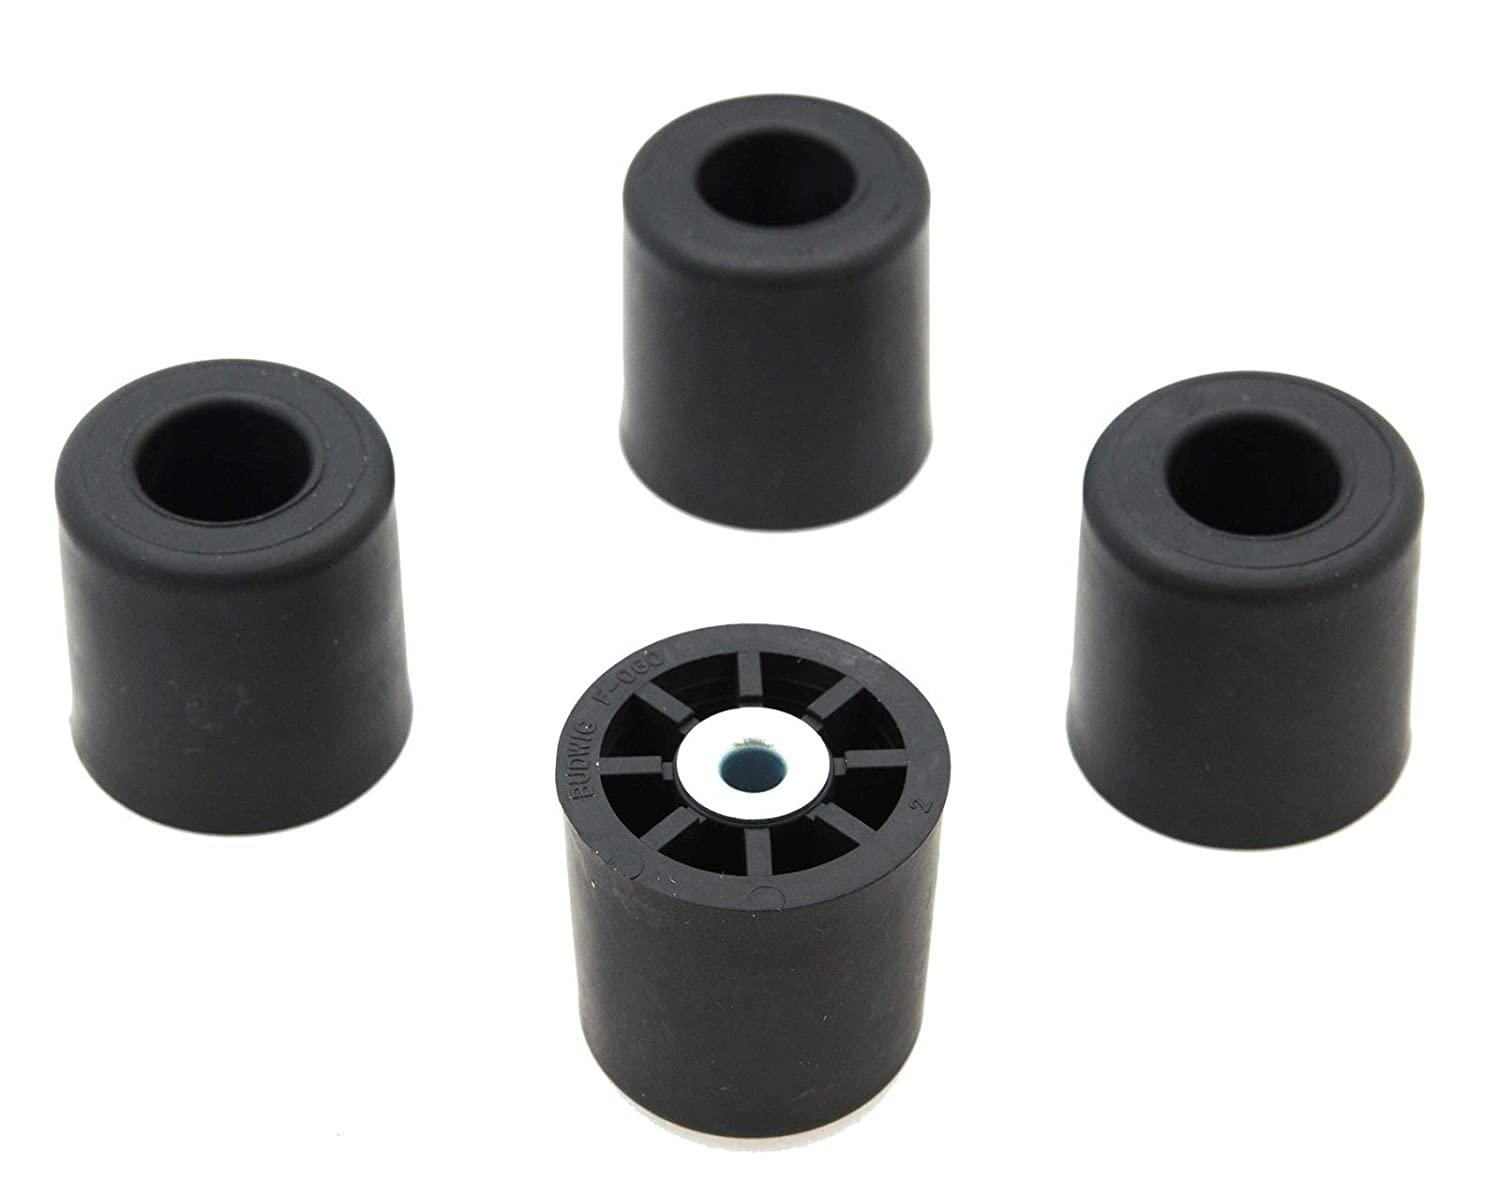 4 LARGE ROUND CYLINDER RUBBER FEET #1 - 1.375 H x 1.375- D Made in USA USA